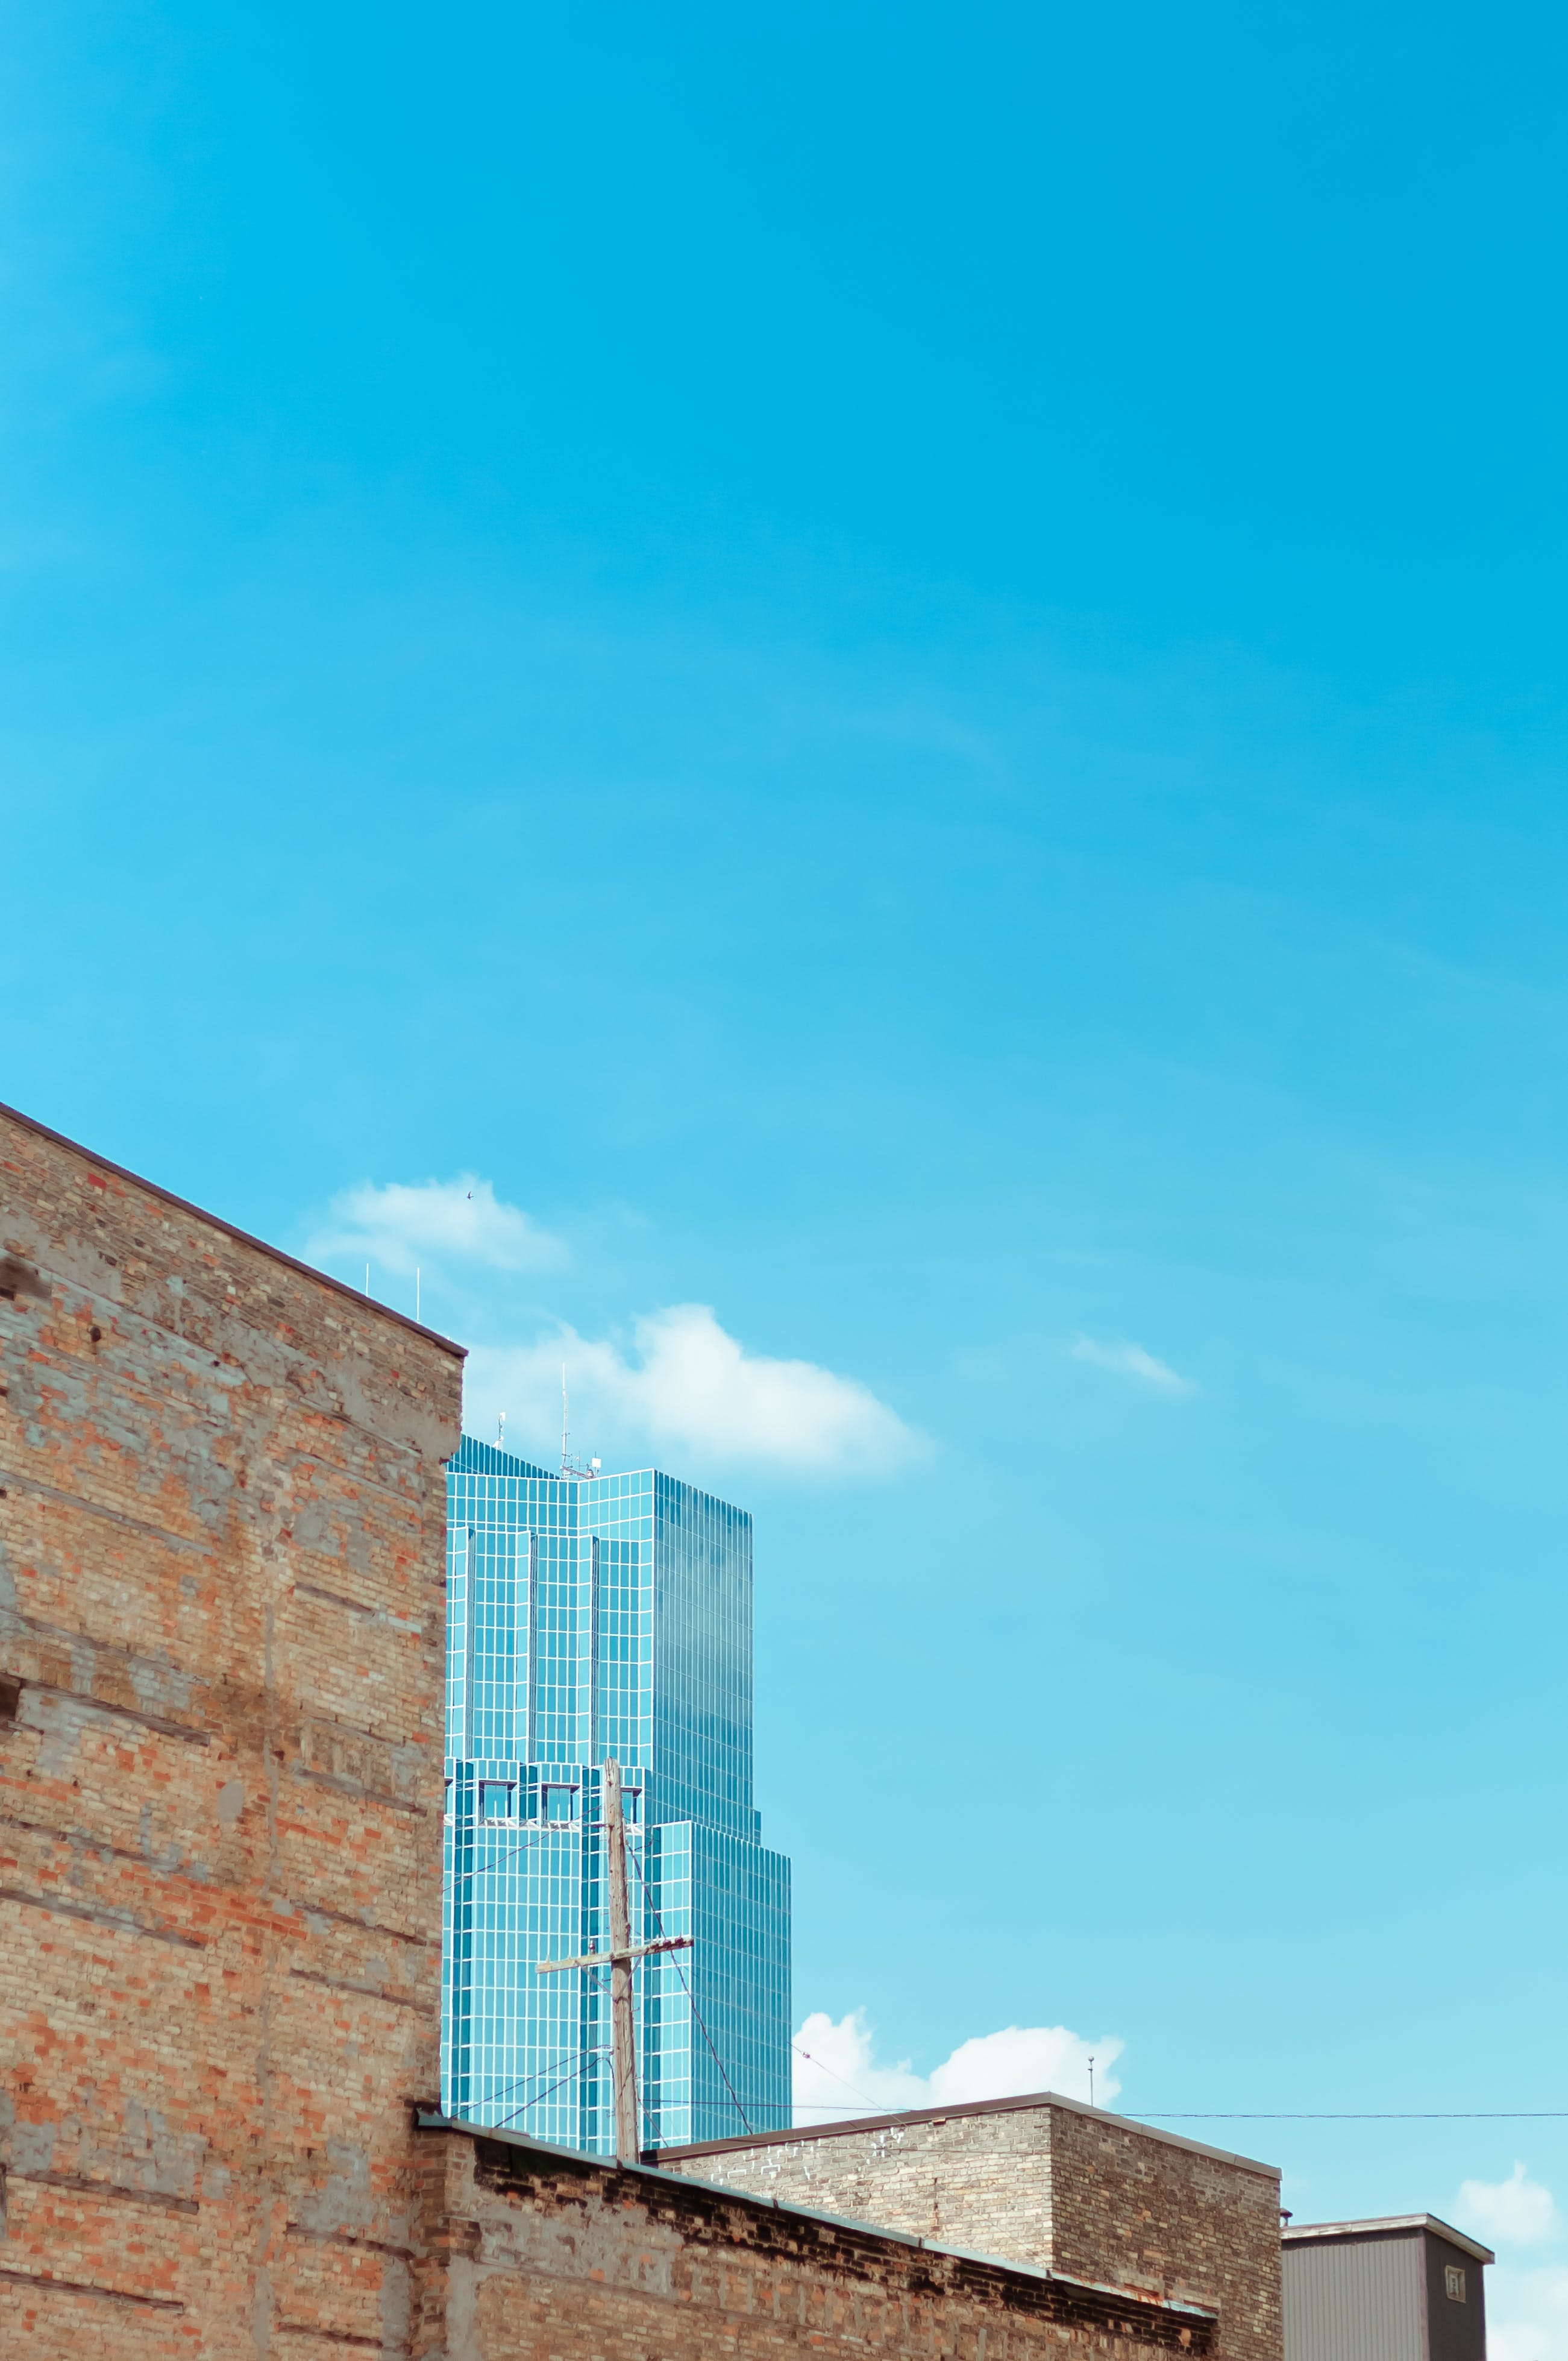 Free stock photo of architectural, architecture, blue sky, brick